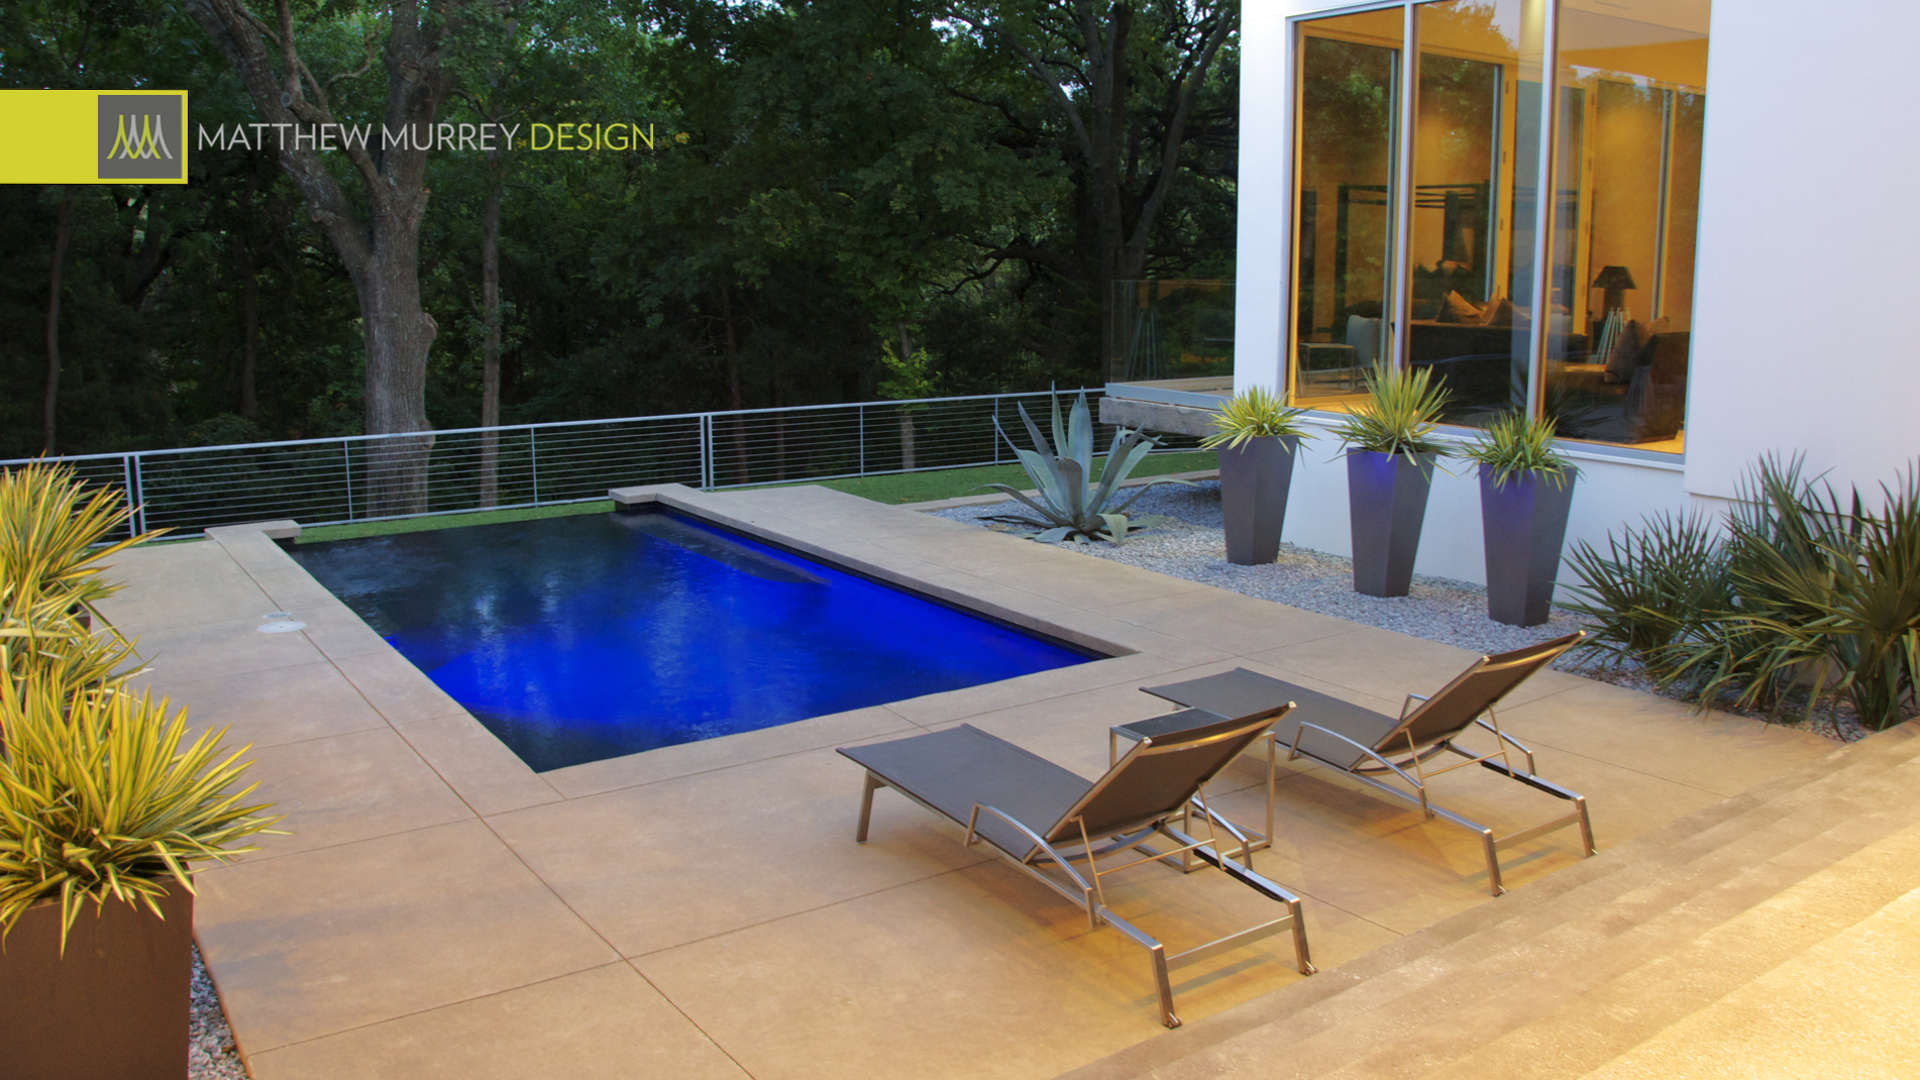 Dallas Landscape Design Firm   Matthew Murrey Design